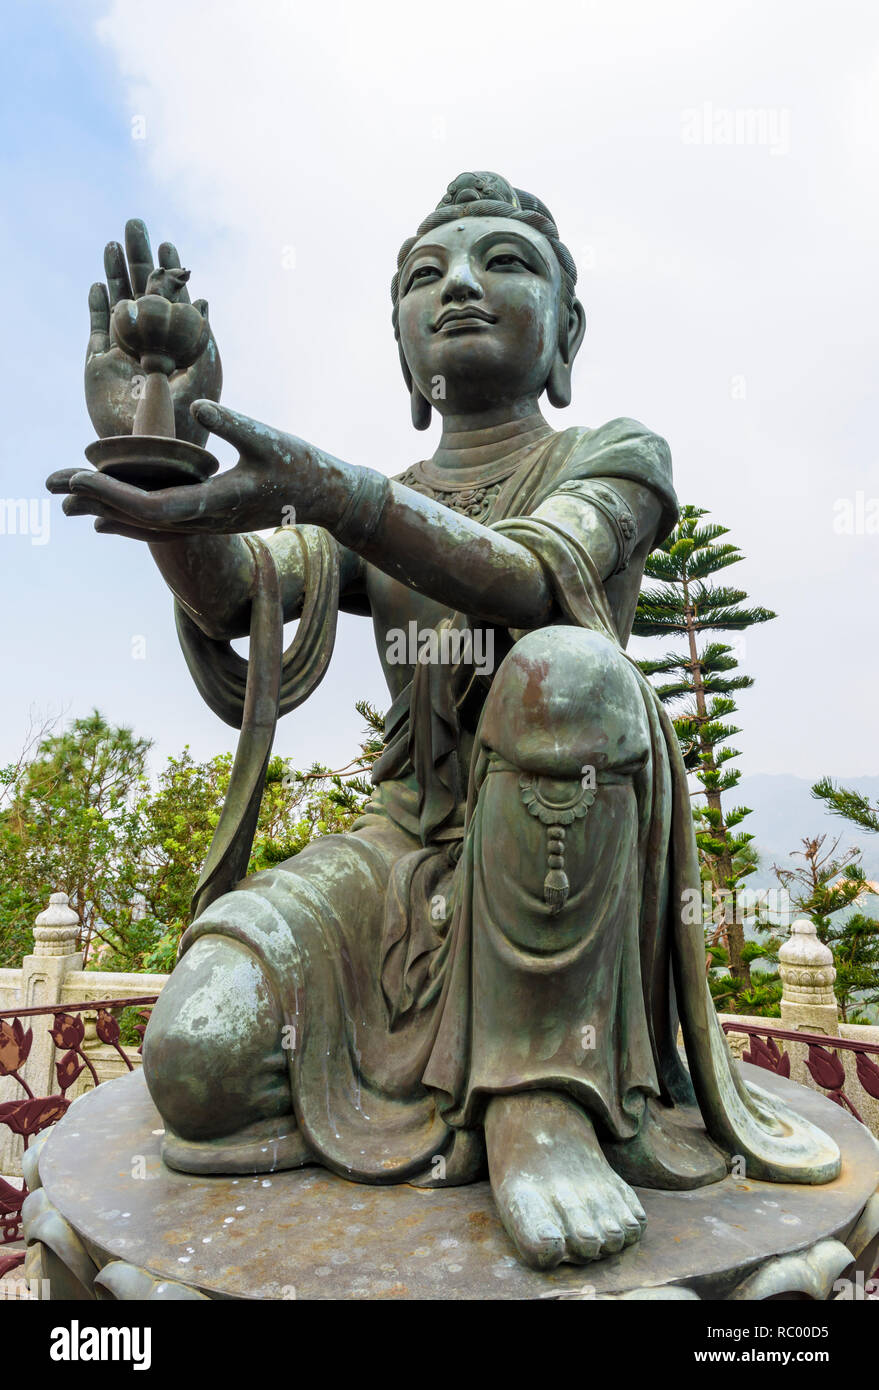 Statue of Buddhist saint making offerings to Buddha at the Tian Tan Buddha, Lantau Island, Hong Kong - Stock Image